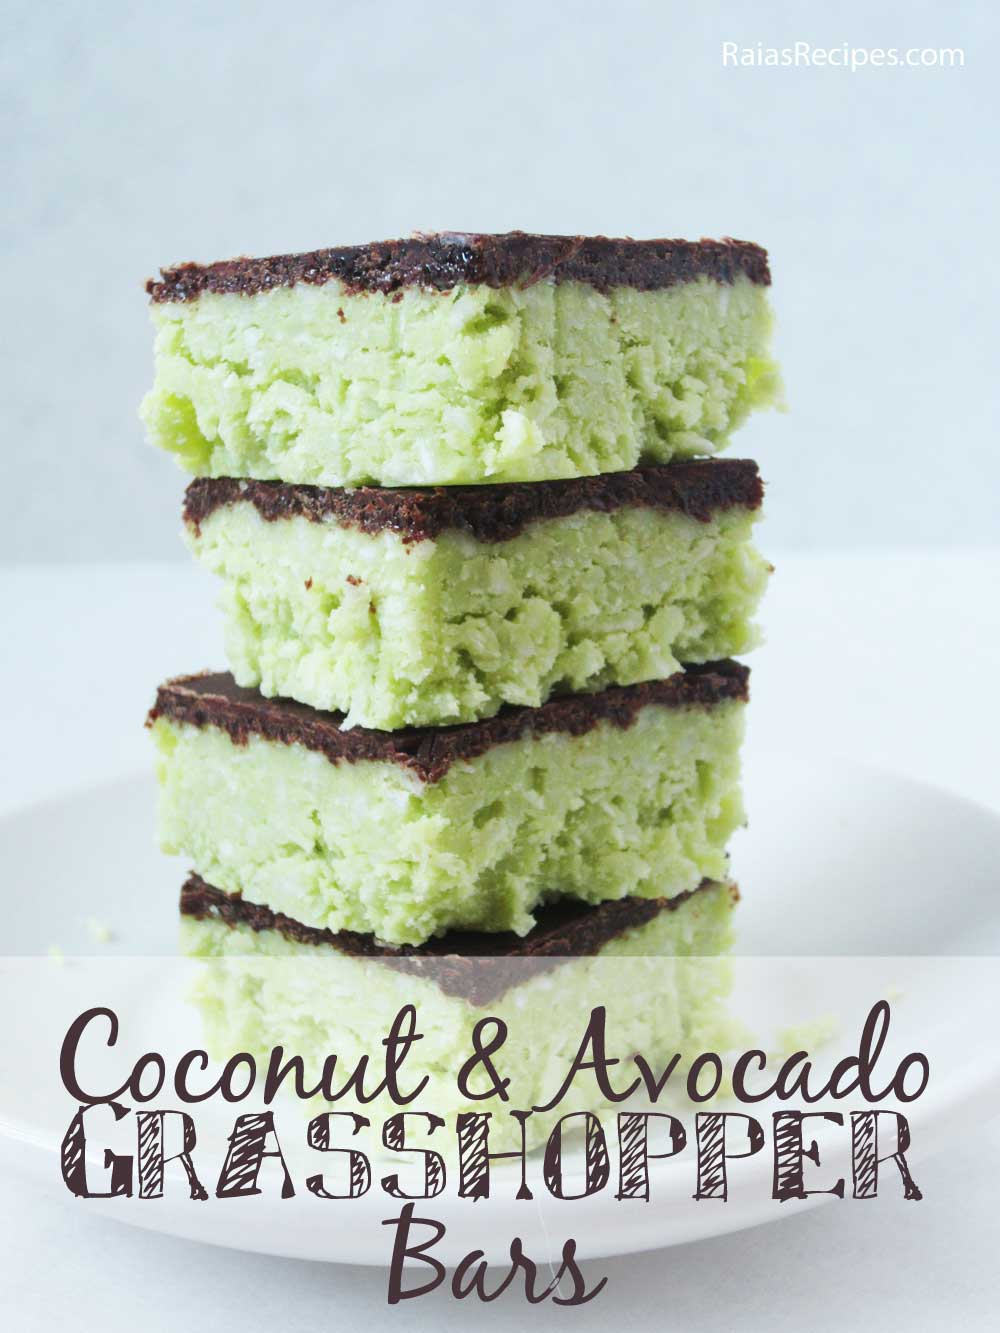 An old photo of my coconut avocado grasshopper bars.